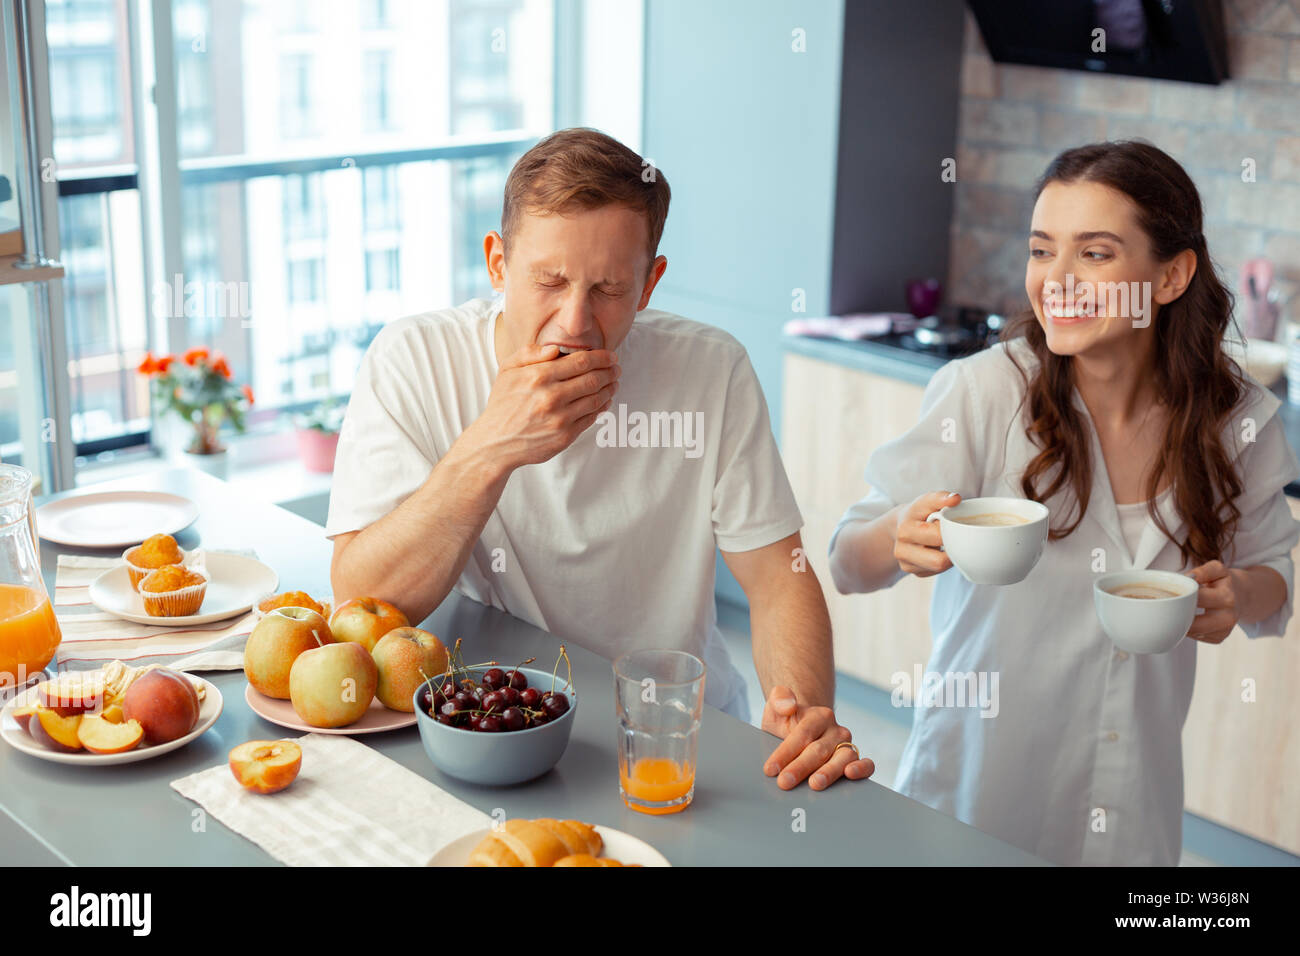 Smiling wife bringing some coffee for sleepy husband - Stock Image